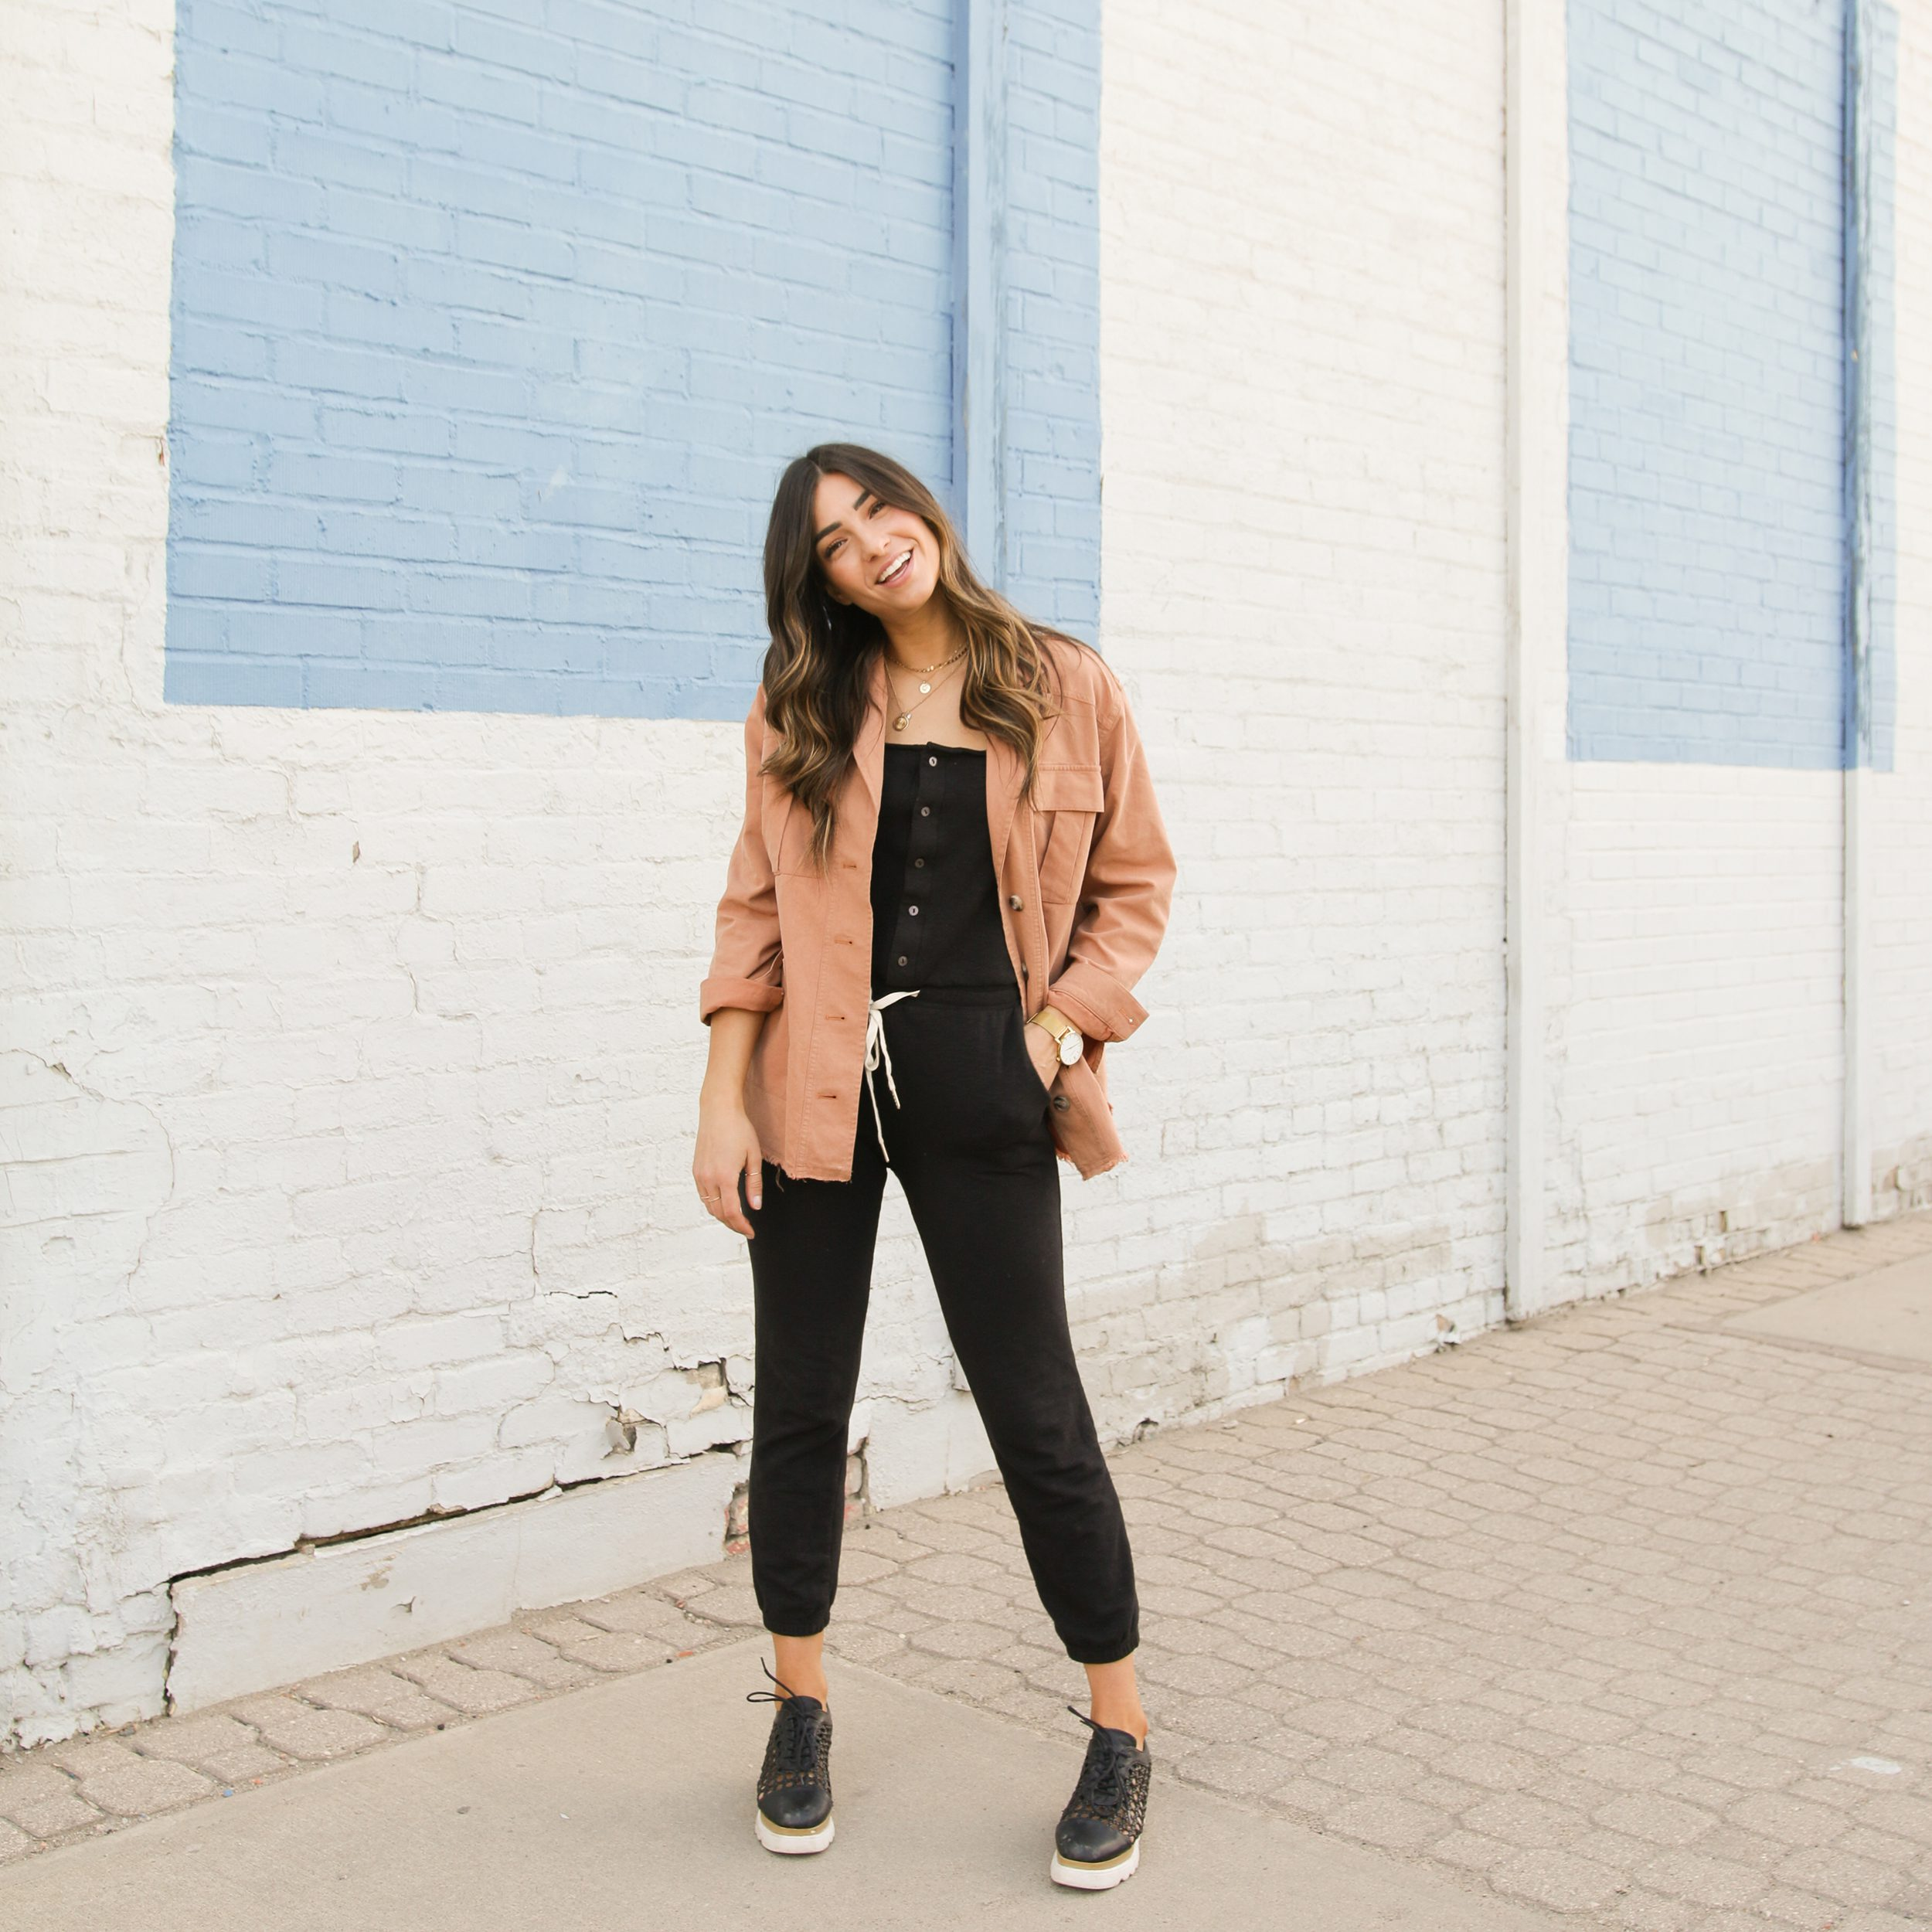 How to style a spring jacket 5 ways